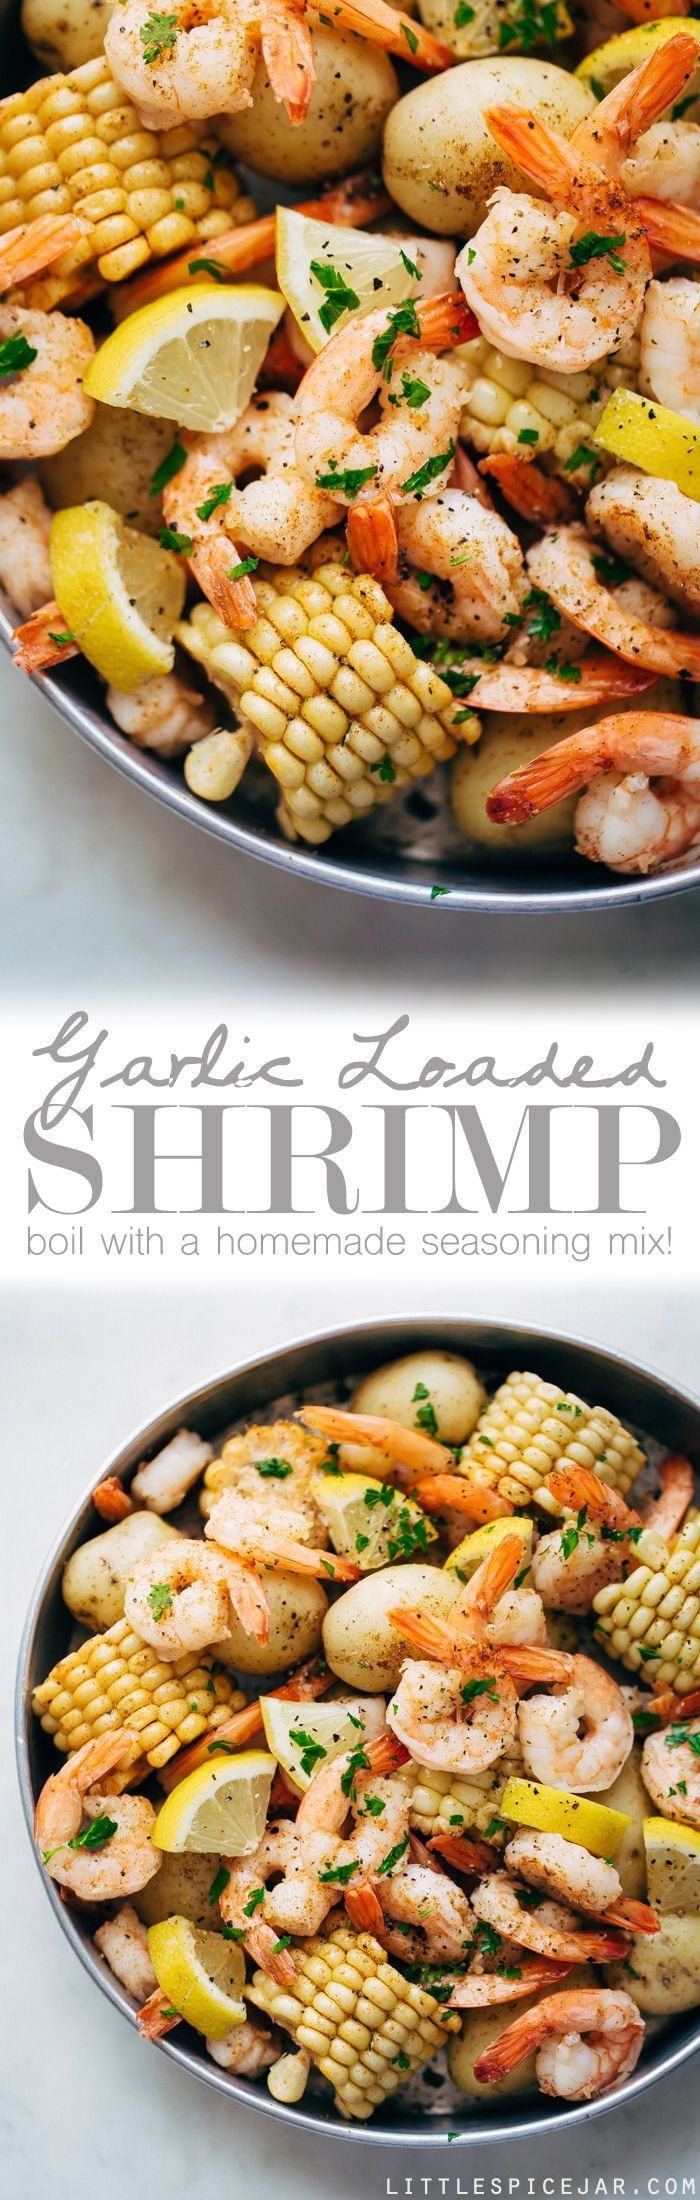 Garlic Loaded Southern Shrimp Boil - This is a 30 minute recipe for a homemade shrimp boil with homemade boil seasoning!